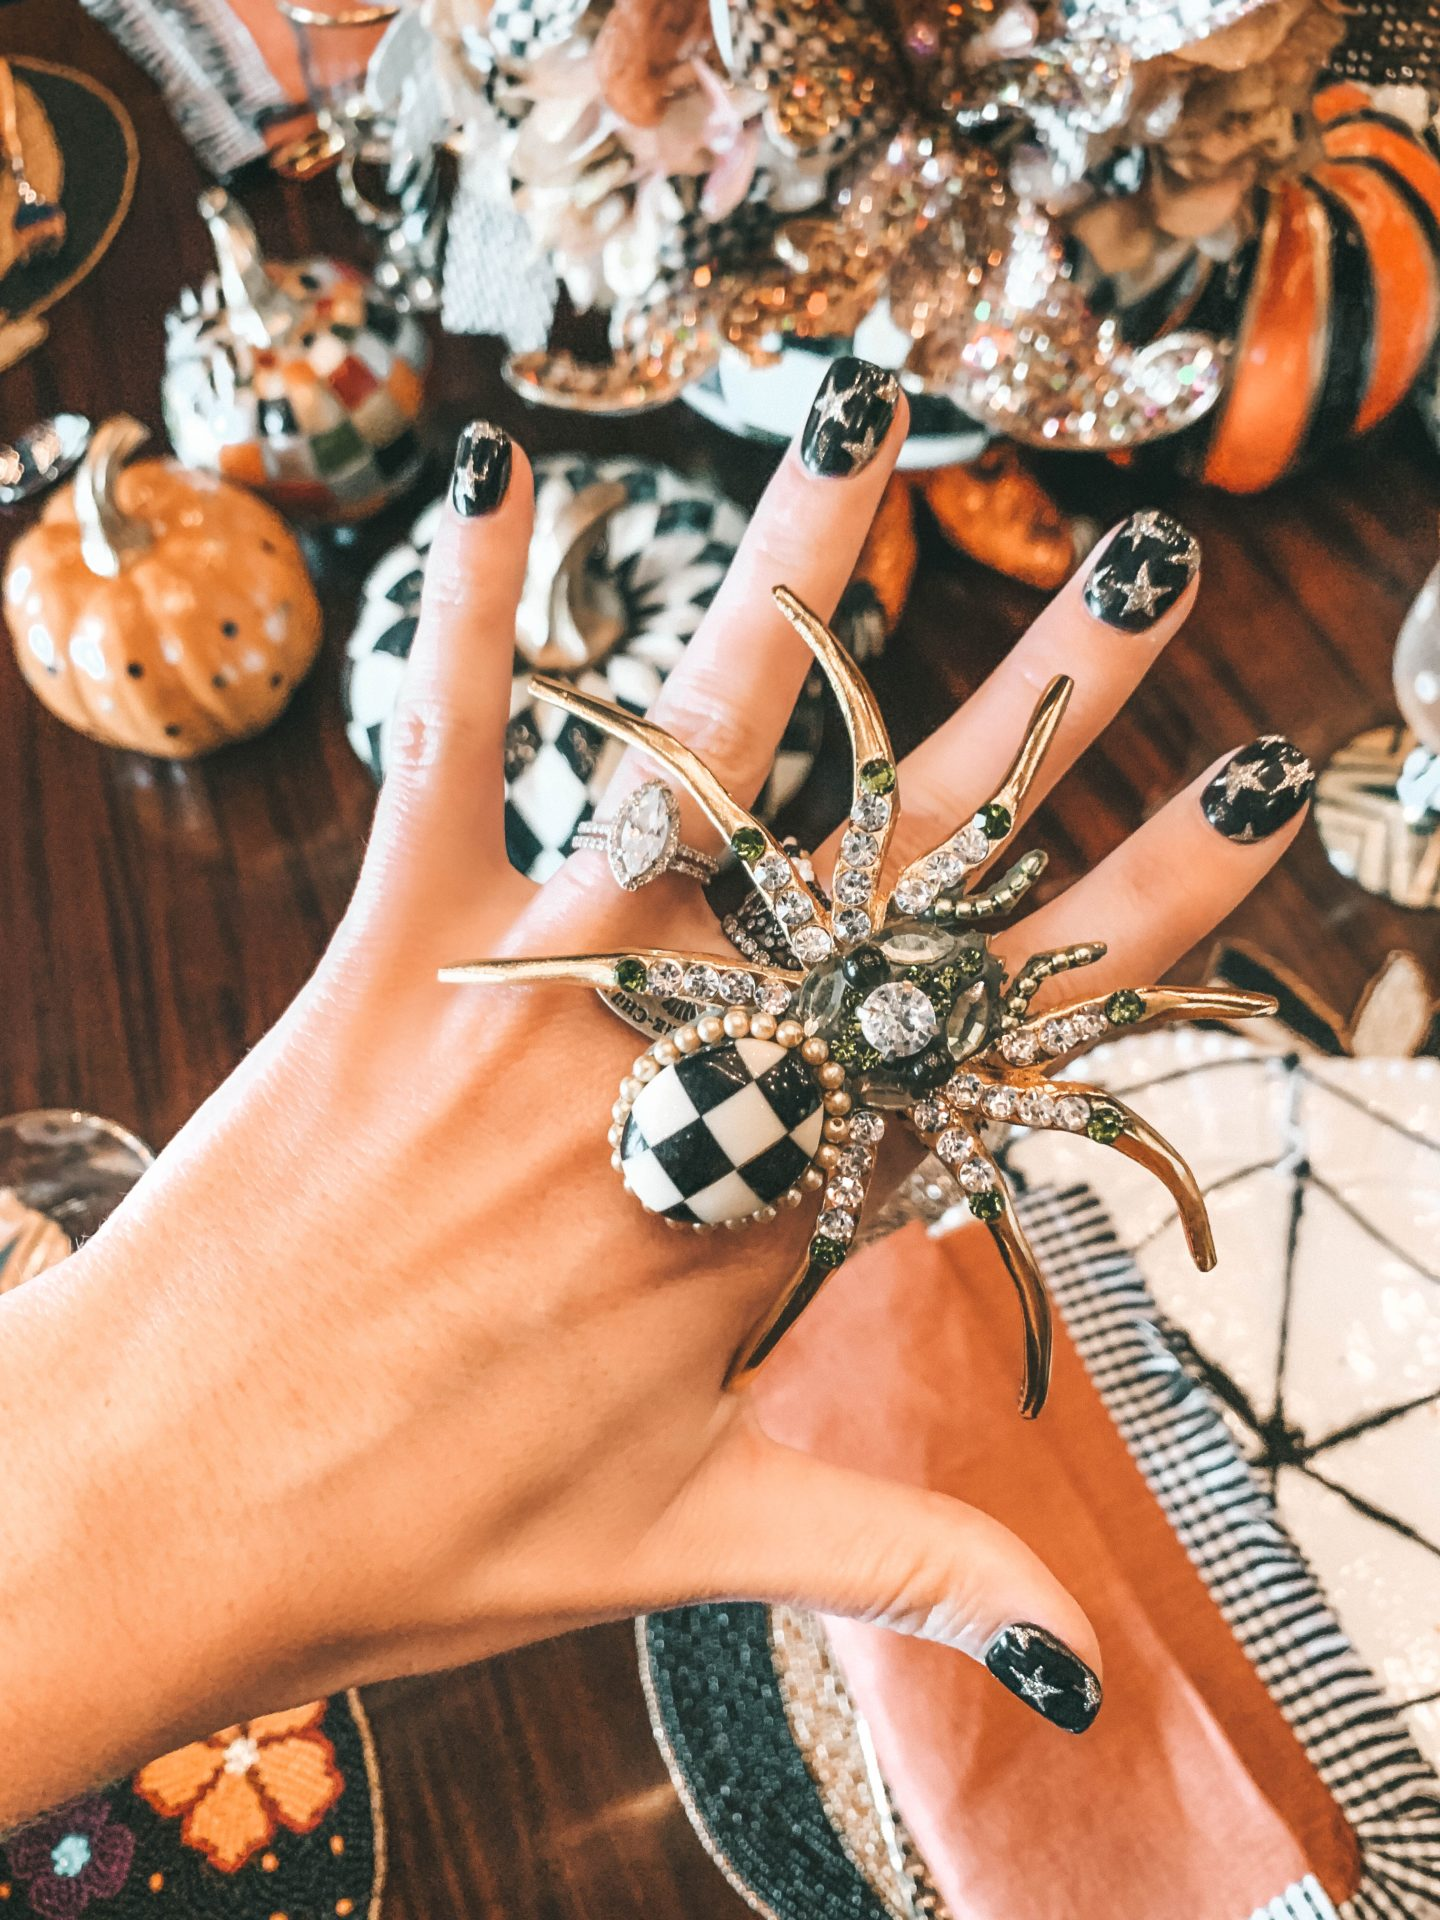 MacKenzie-Childs Halloween Home Decor by popular life and style blog, Dressed to Kill: image of a woman wearing a giant MacKenzie Childs spider napkin ring.